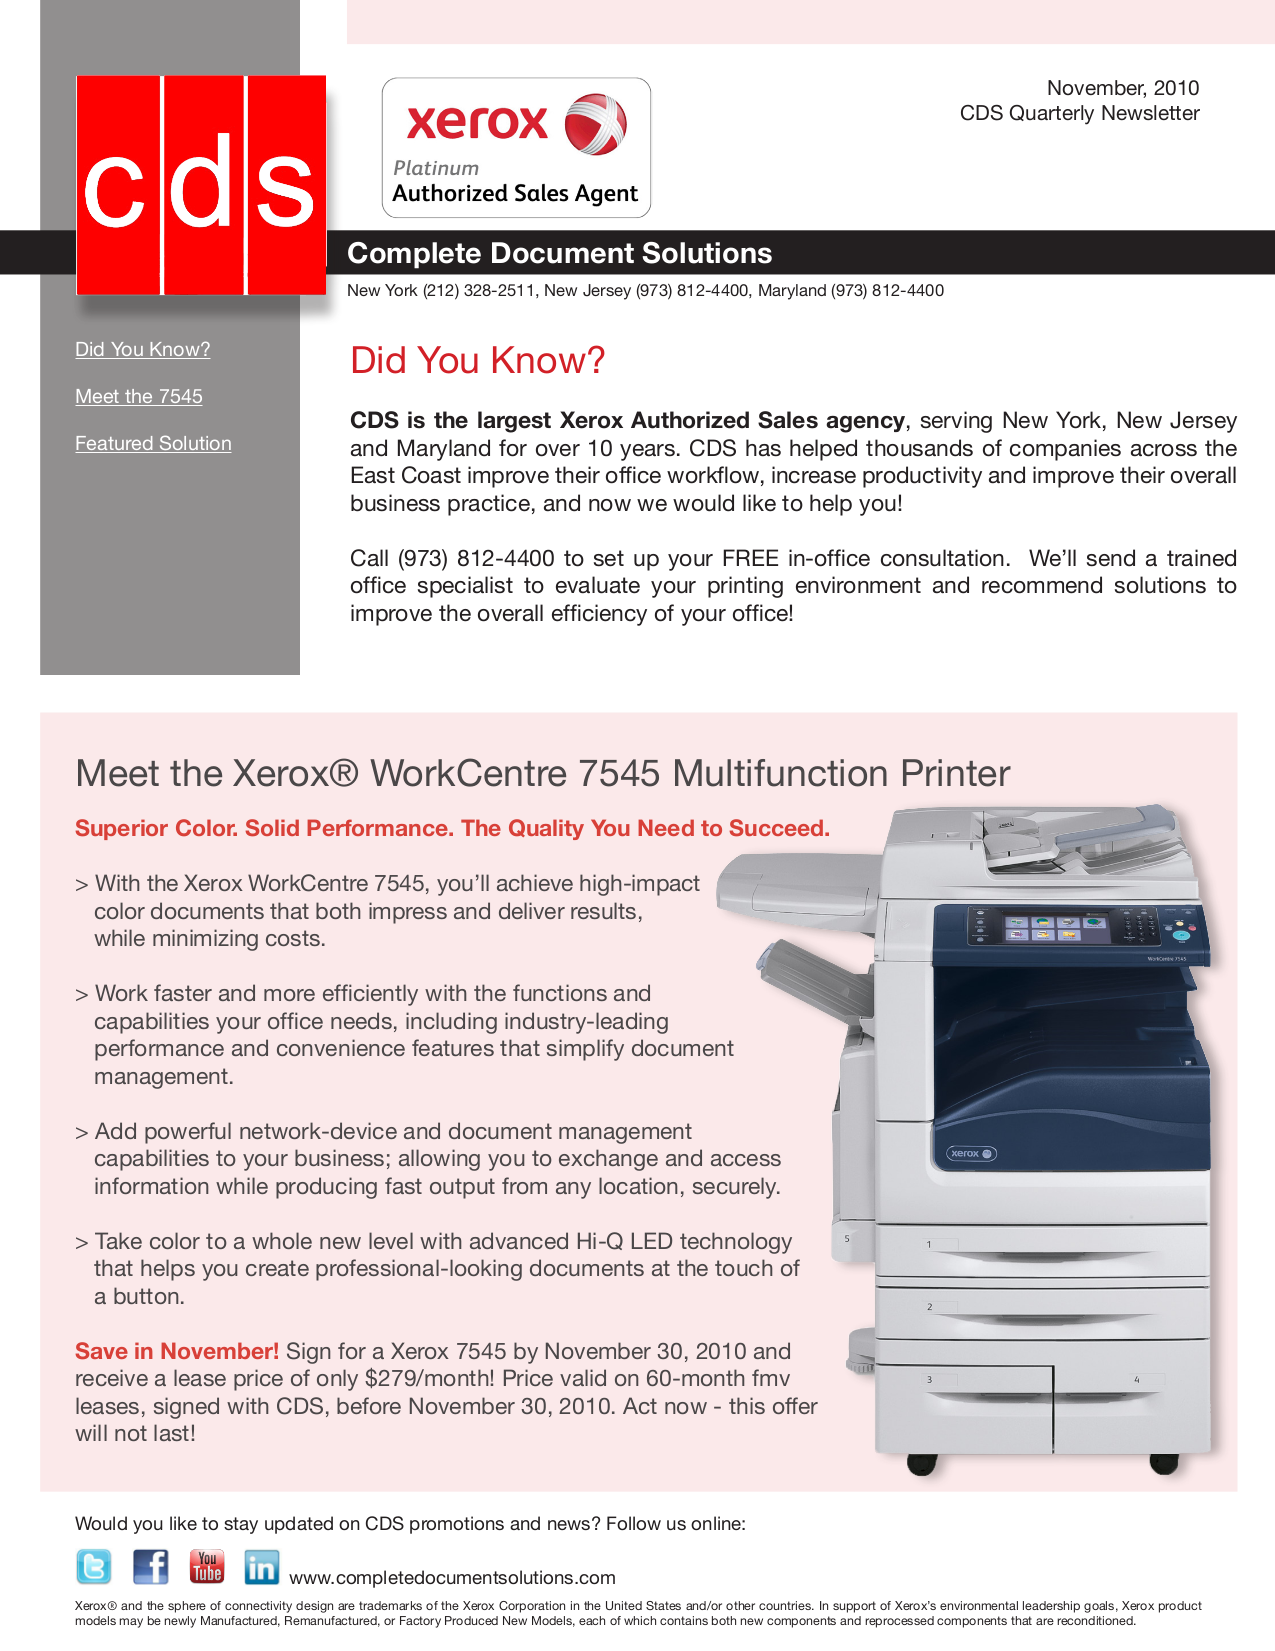 Download free pdf for Xerox WorkCentre 7545 Multifunction